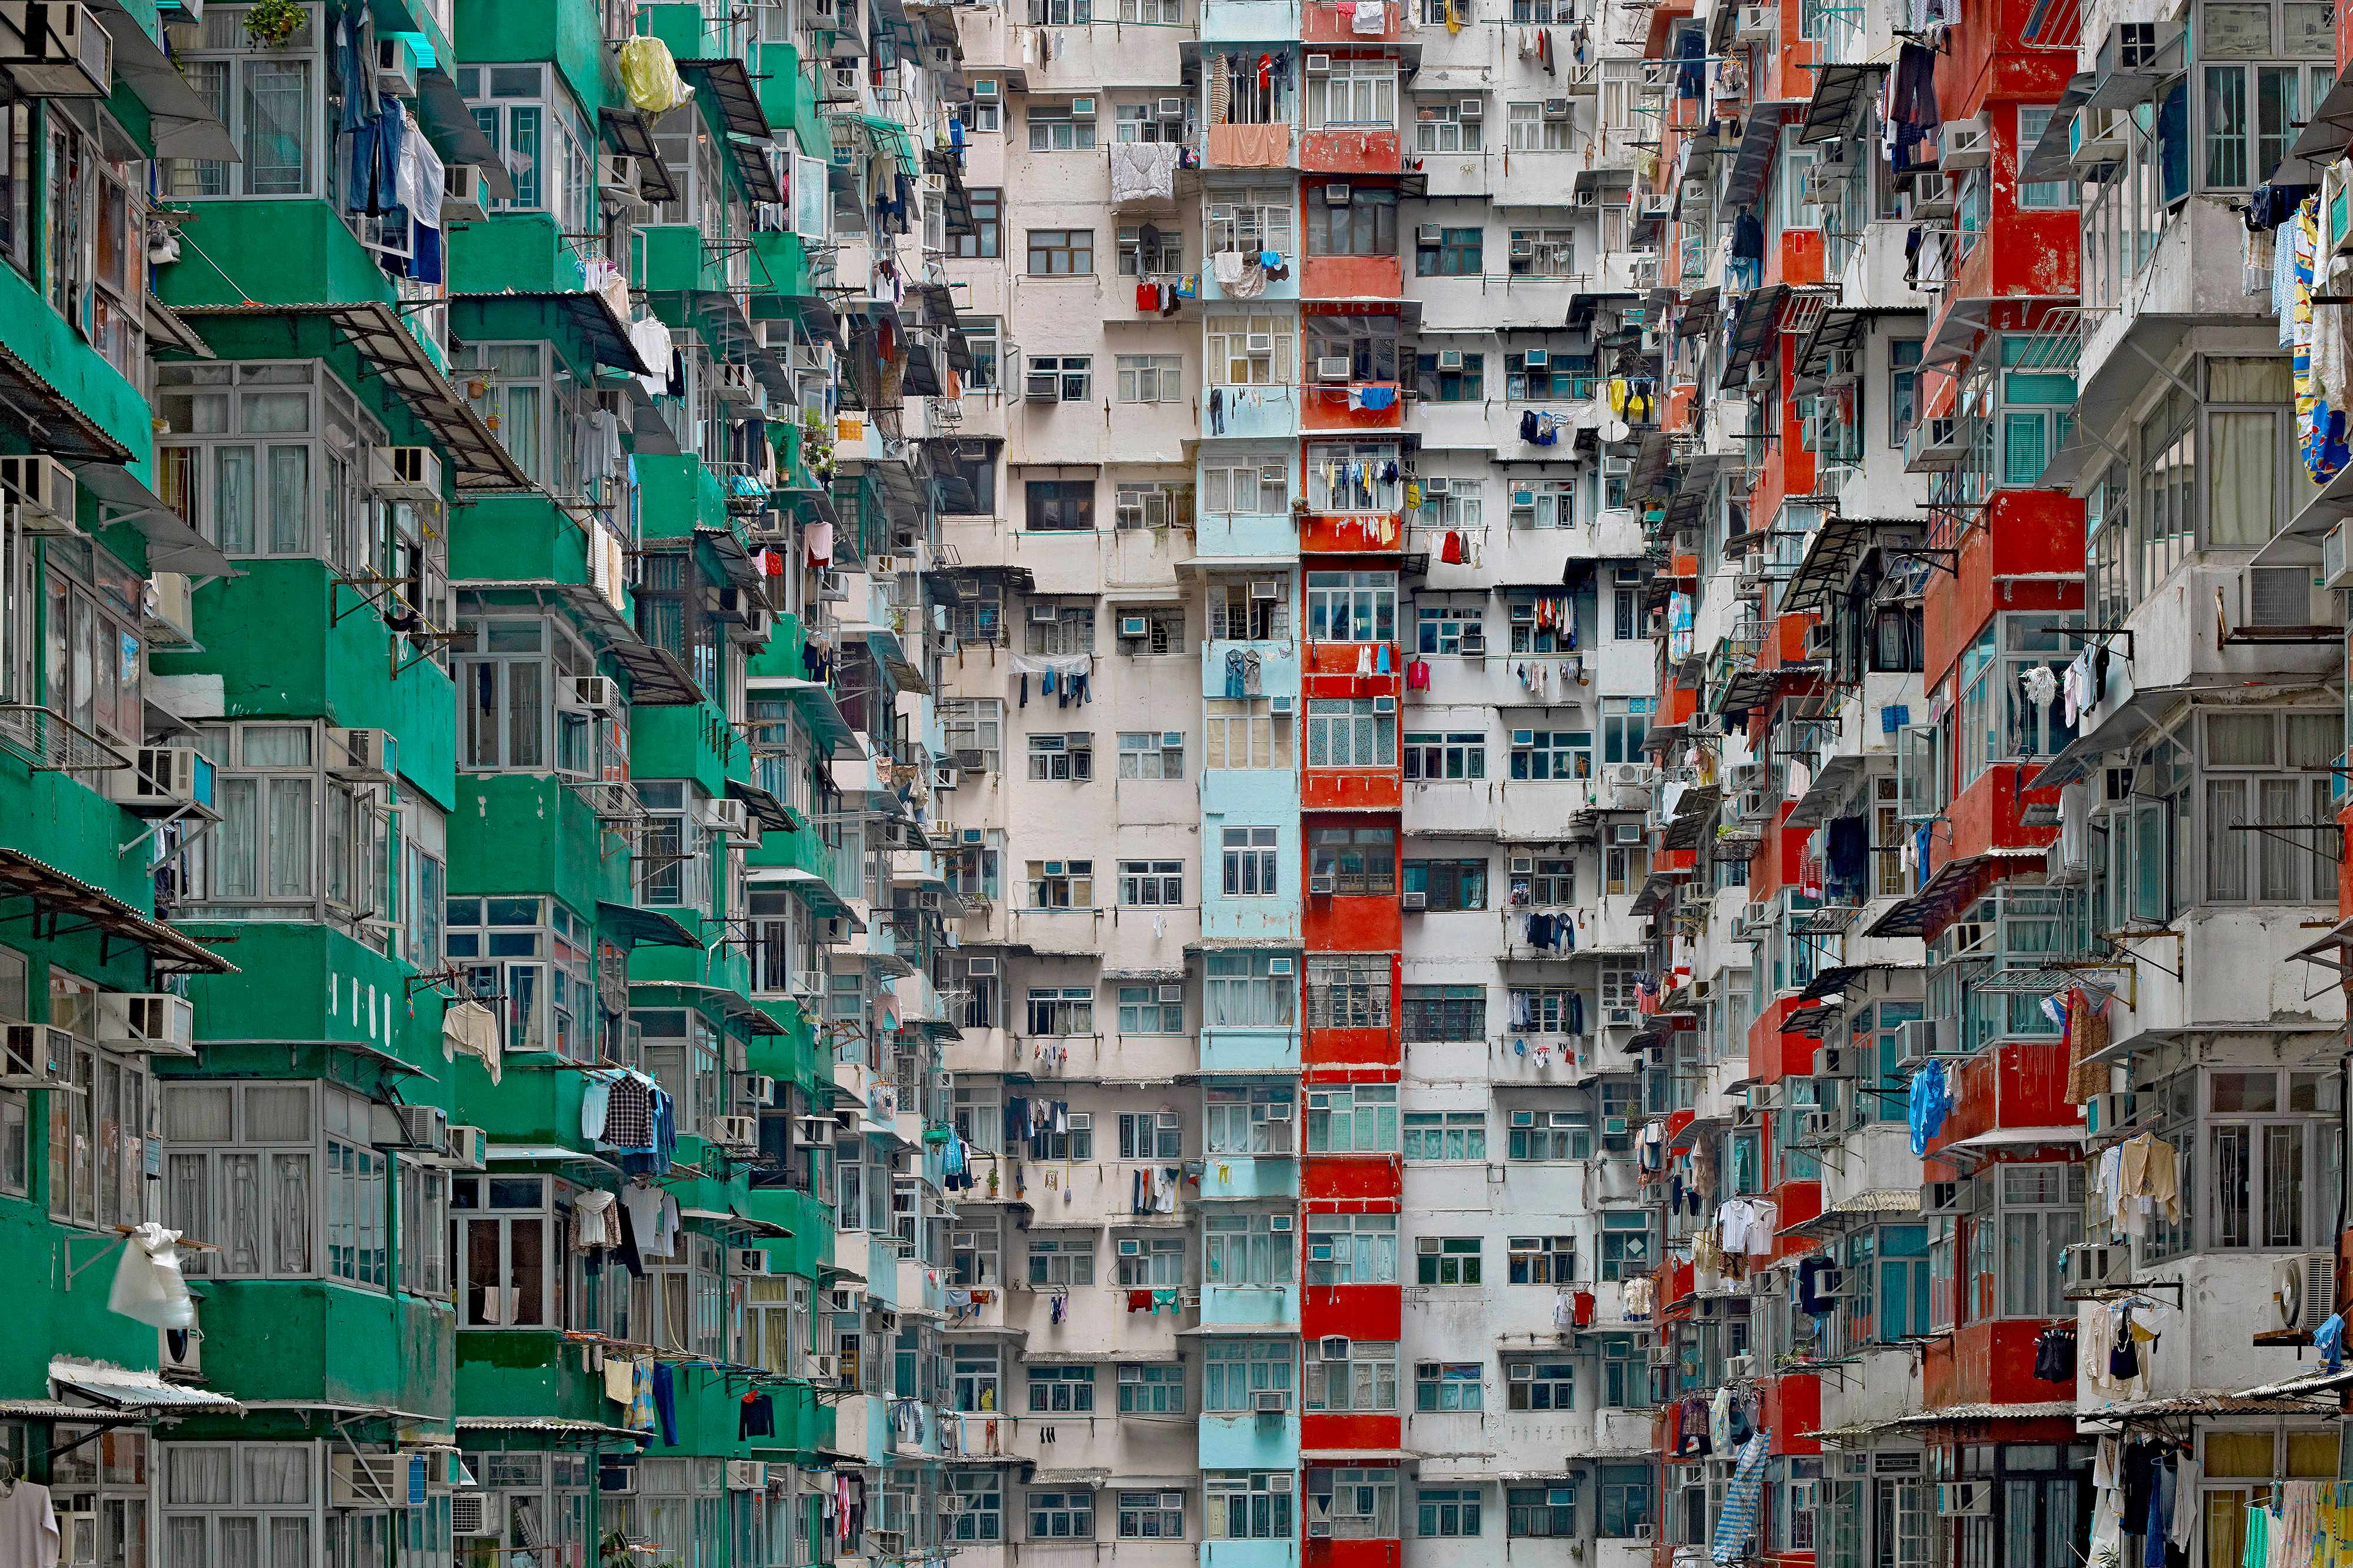 Colourful apartment buildings tightly packed together in Hong Kong